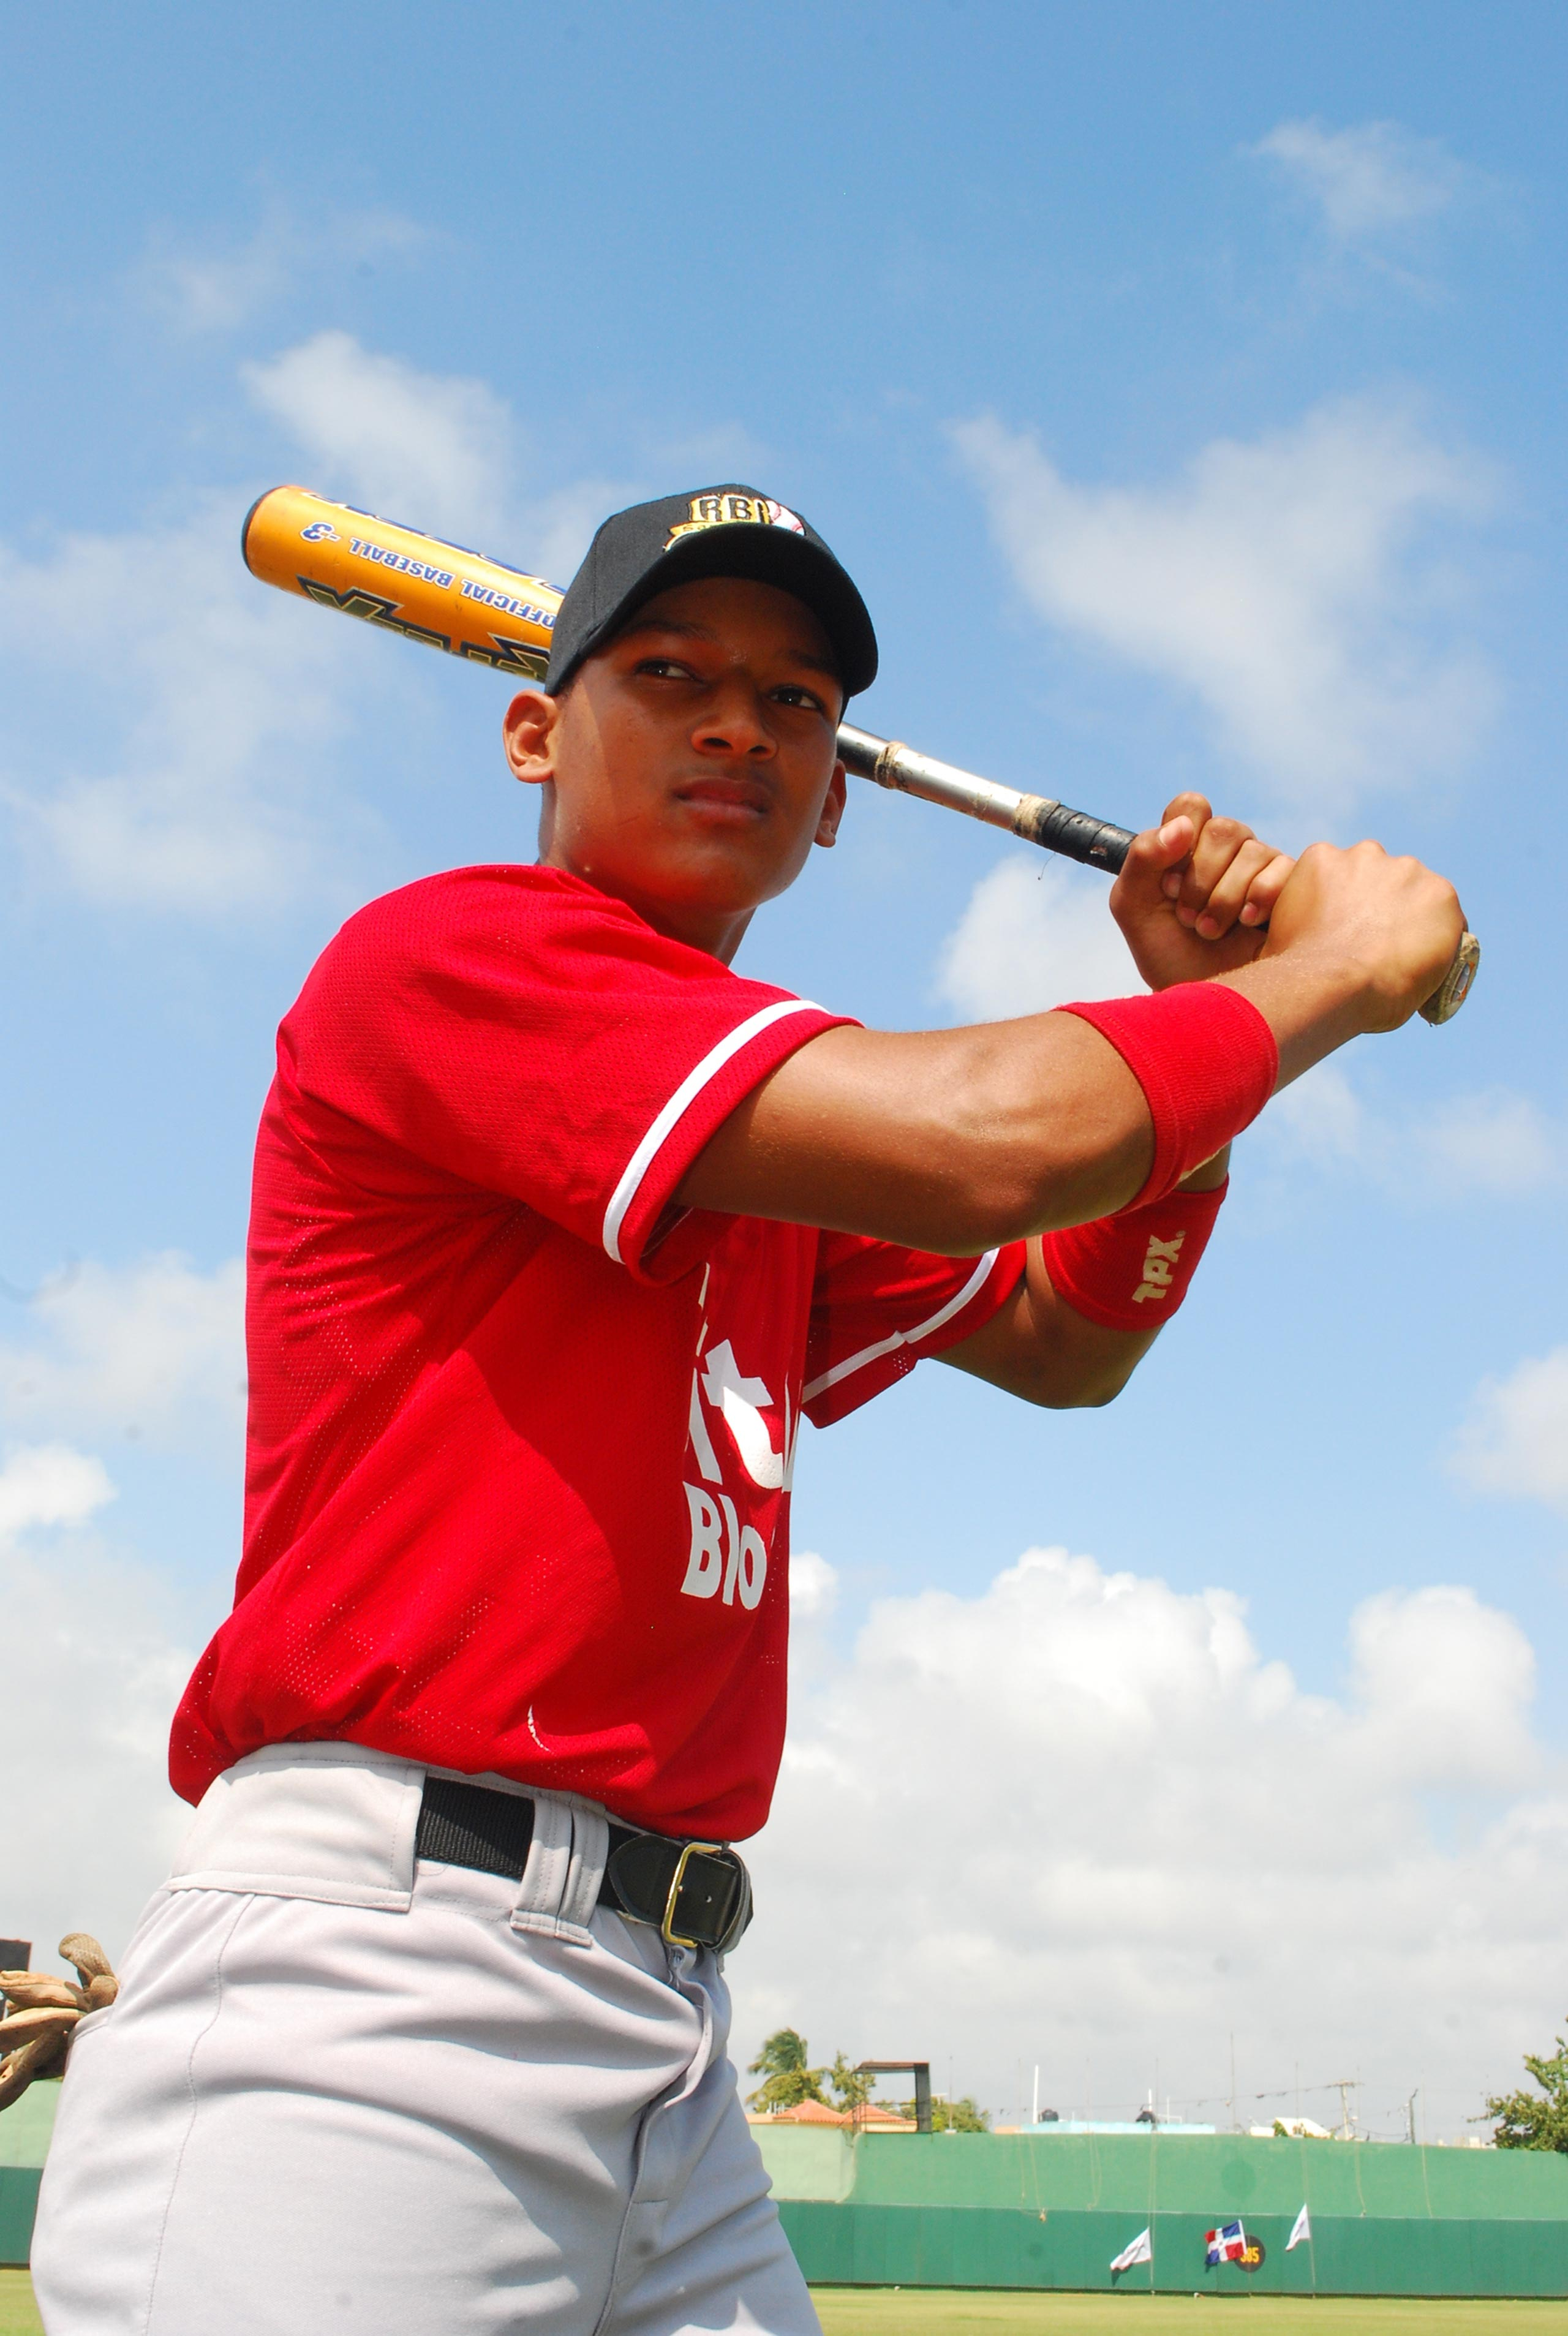 The Dominican Republic is considered a hotbed of talent, and CEMEX's program has helped put baseball within the reach of thousands of young athletes